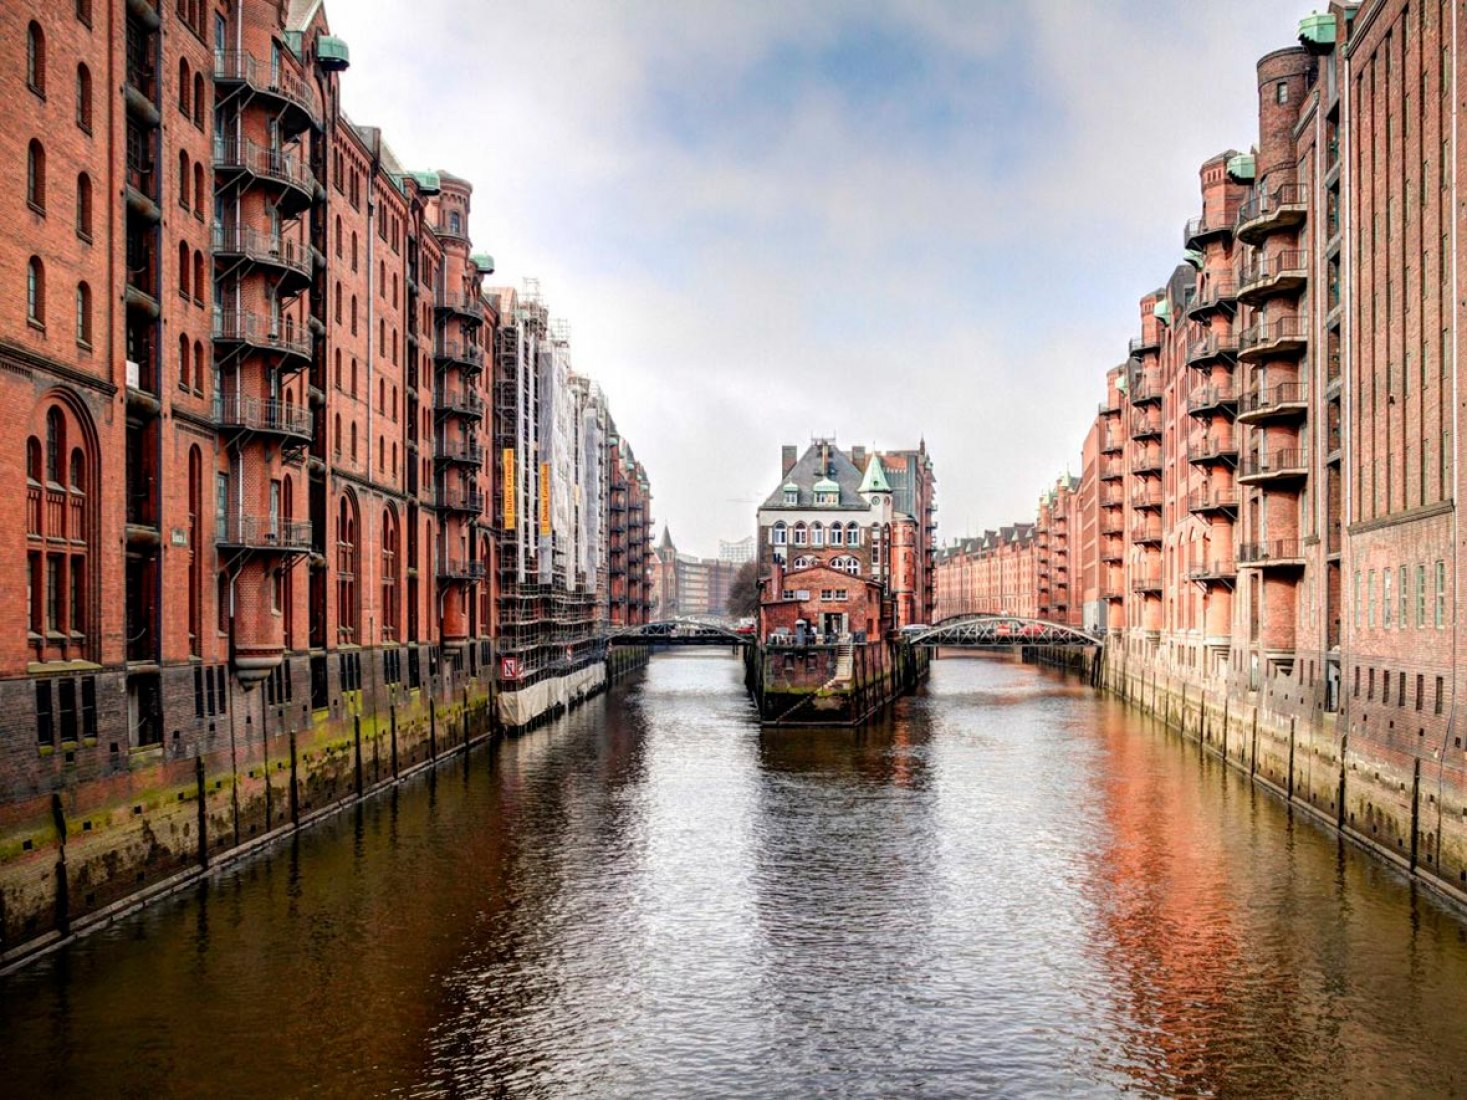 Hamburg's warehouse district has been given world heritage status. Image courtesy Hamburg Marketing GmbH/Christian Spahrbier.